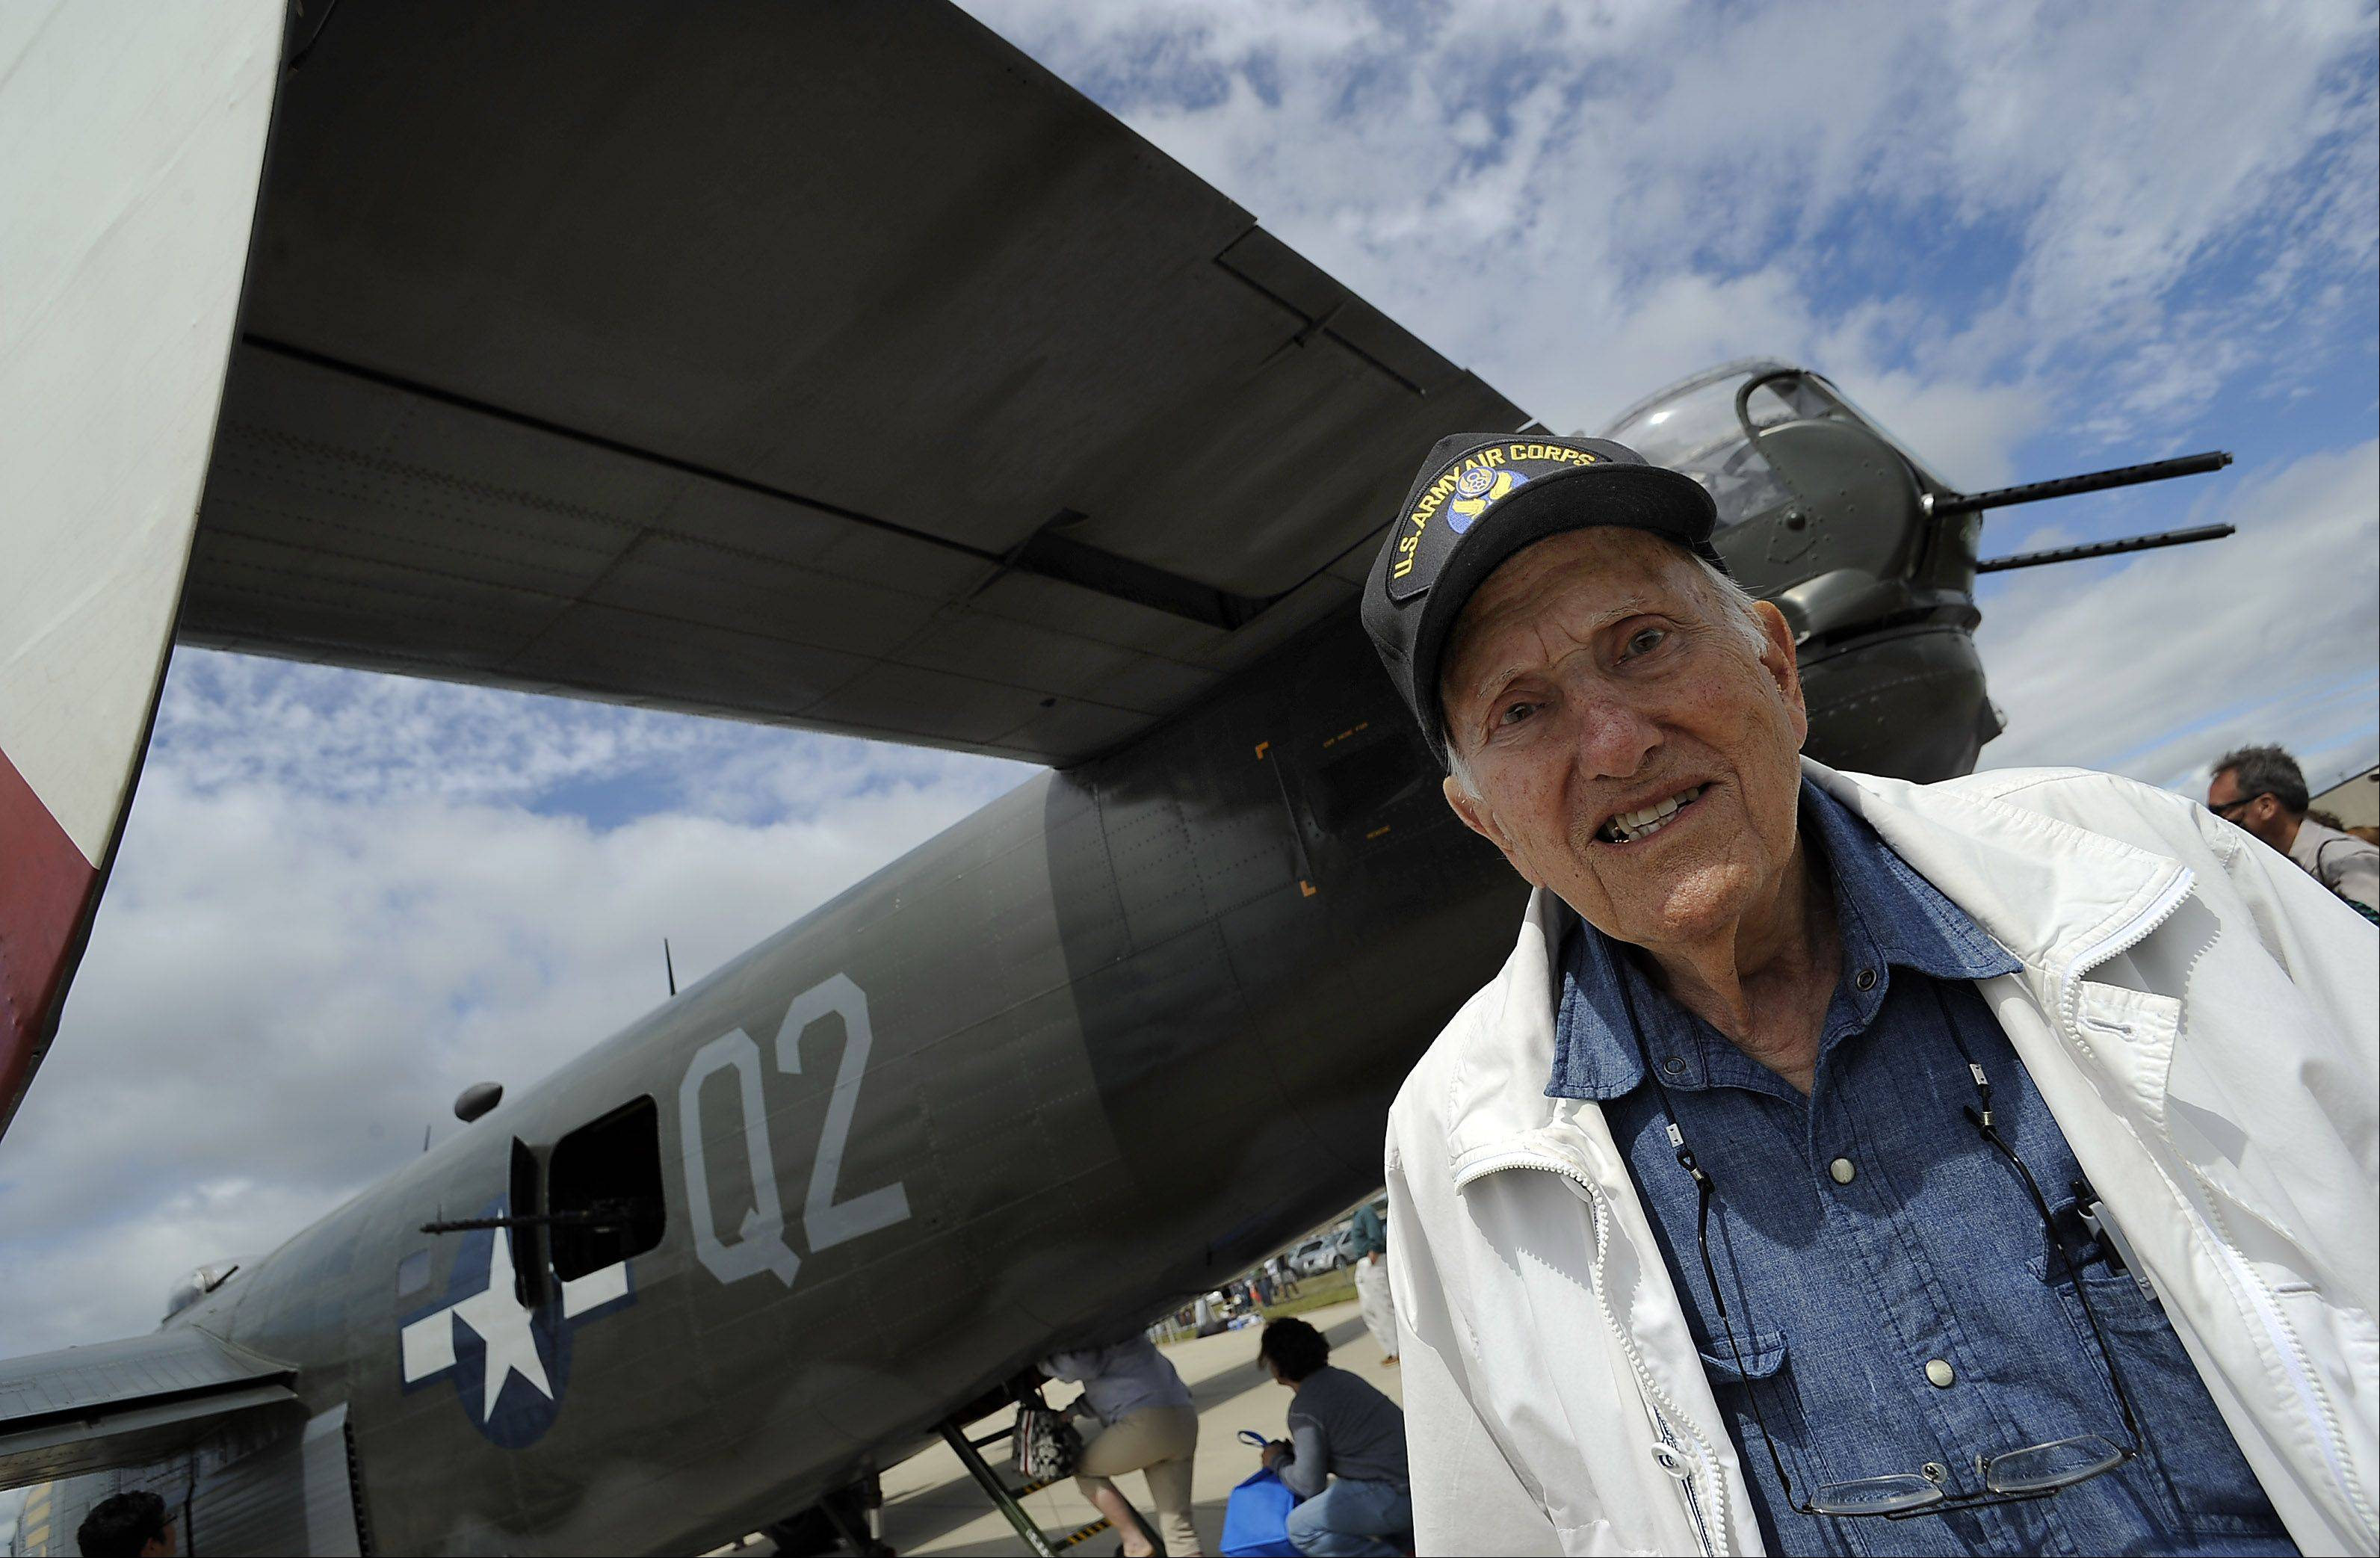 Jim Brahos, 90, of Beach Park, Illinois stands by the tailgunner section of the B-24 Liberator, just like the one he was a tailgunner in during World War II serving the years 1942 through 1945 at Chicago Executive Airport on Saturday.